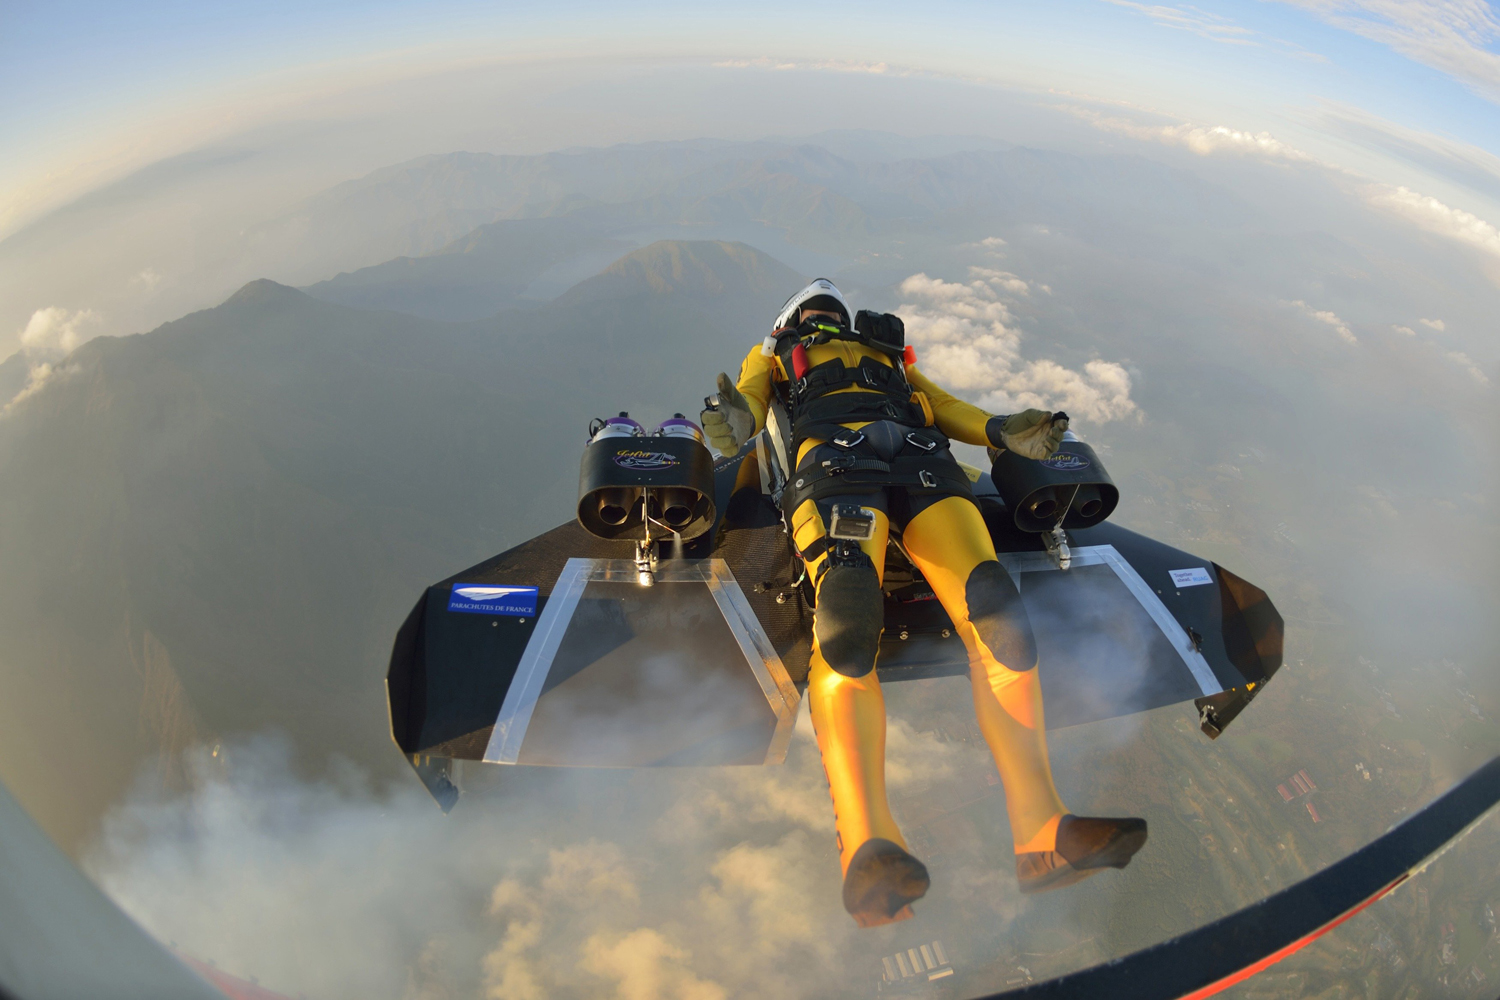 Nov. 1, 2013. Yves Rossy, known as the Jetman, drops from a helicopter to fly near Mount Fuji in this handout photograph released by Breitling SA.